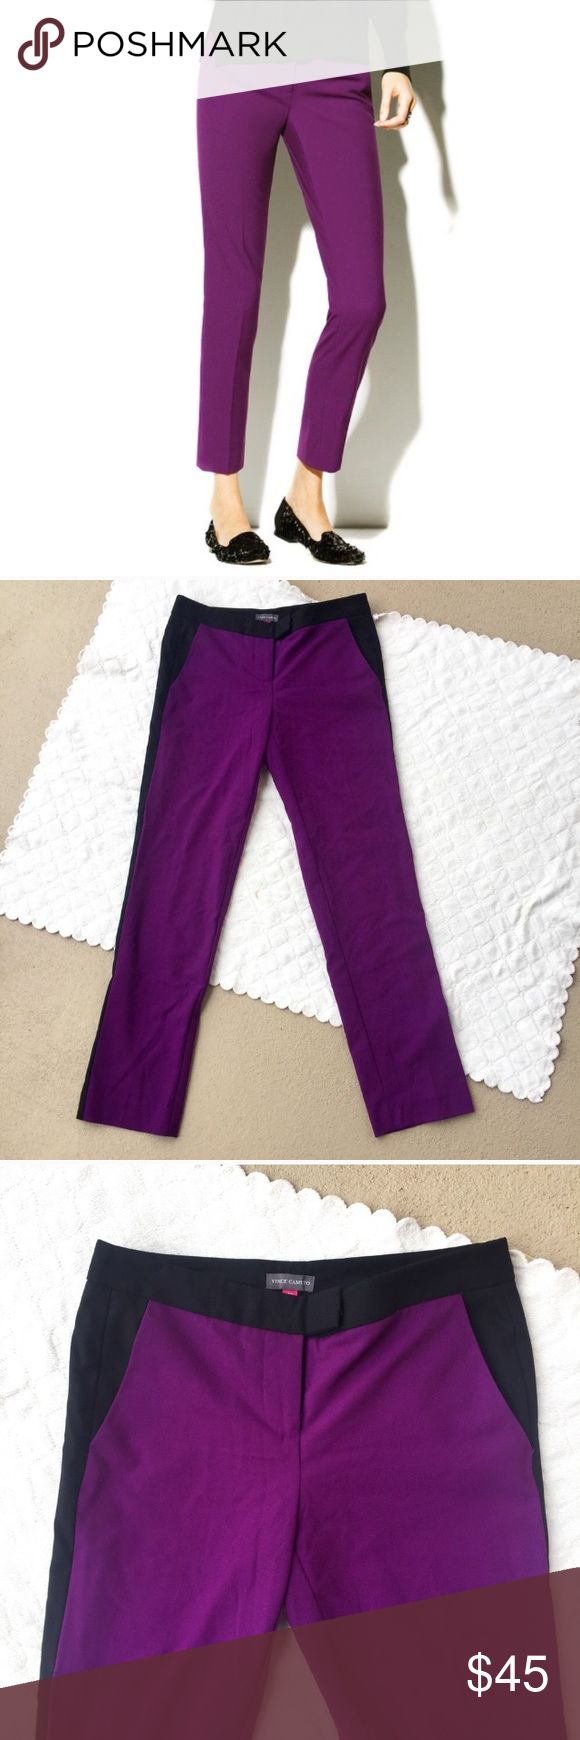 """4P / Vince Camuto purple ankle skinny pants Vince Camuto purple skinny ankle dress pants. Black trim down the sides for a bold, contrast look. Hook & button closure. Front pockets & back faux pockets.   SIZE: 4P outseam: 36"""" inseam: 28"""" waist: 14"""" rise: 8.5""""  ❌ no trades ✔️offers welcome! ❣️add to bundle for **discounted** shipping offer! Vince Camuto Pants Ankle & Cropped"""